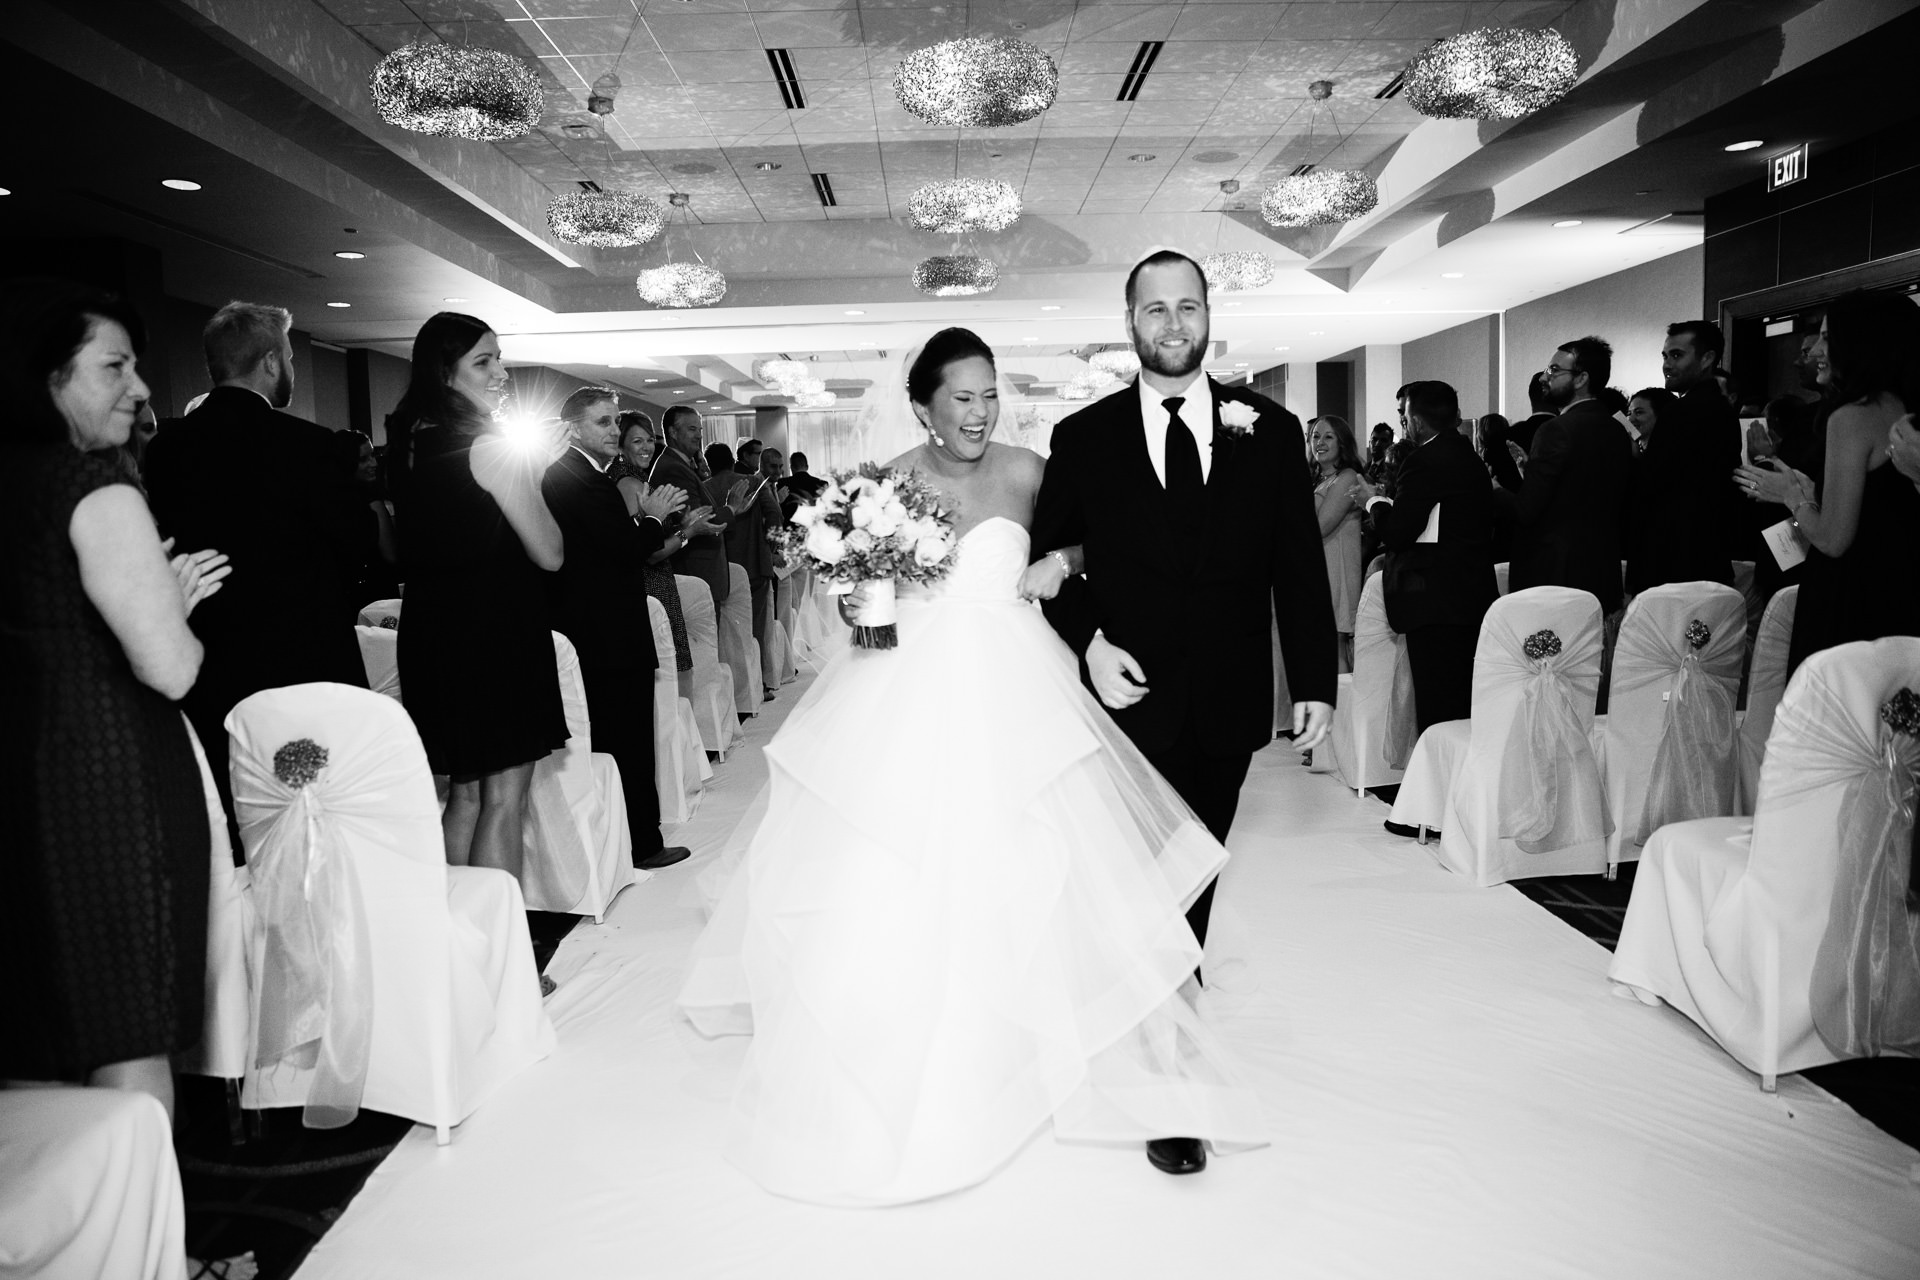 Ballpark Hilton Traditional and Nontraditional Jewish Wedding and Reception in St Louis MO photos by St Louis Wedding Photographers TJ and Nichole Oldani Photography 85.jpg